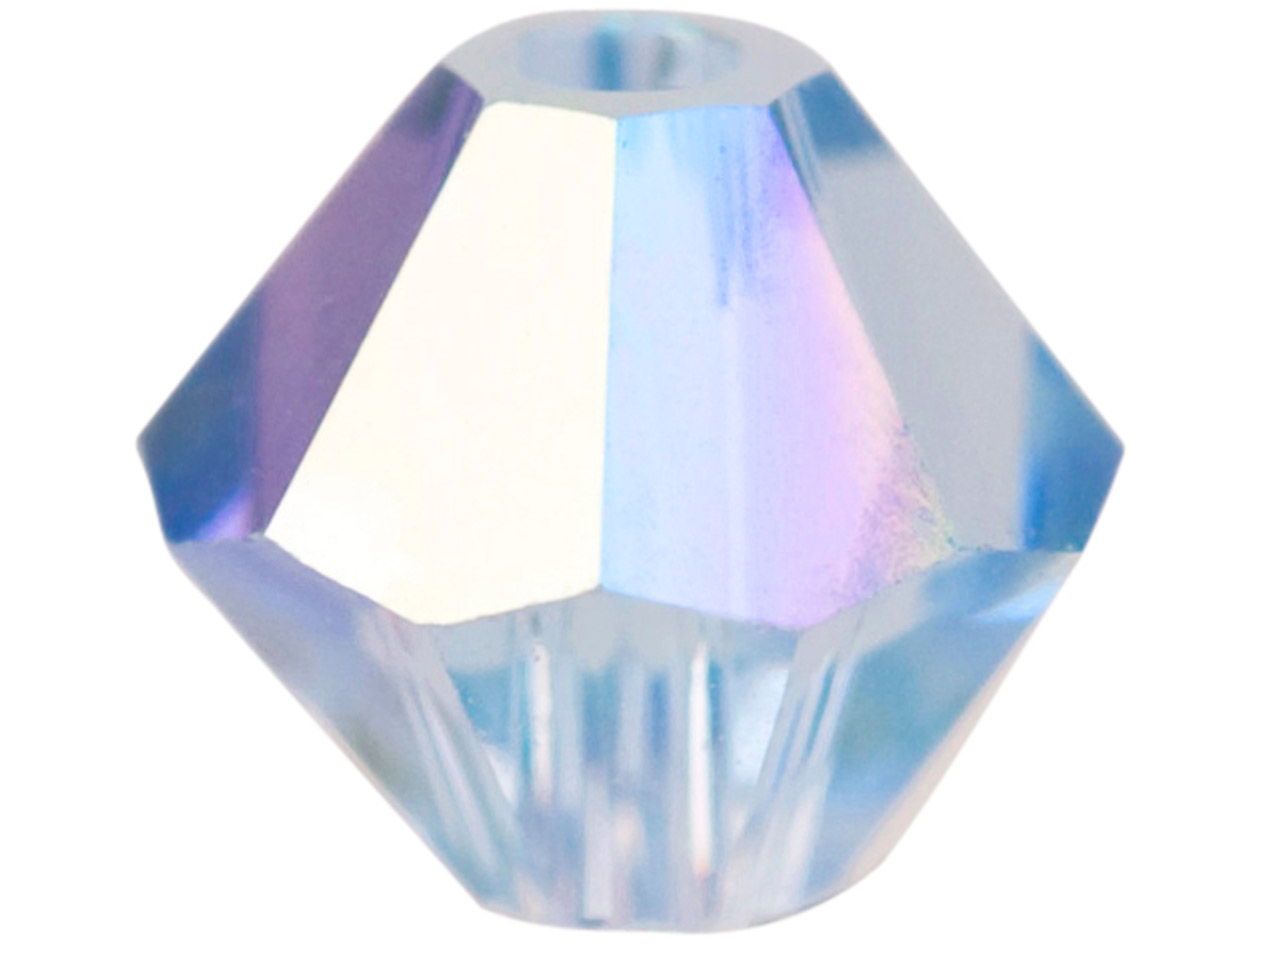 Swarovski Crystal Pack of 24        Bicone, 5328, 4mm Light Sapphire Ab